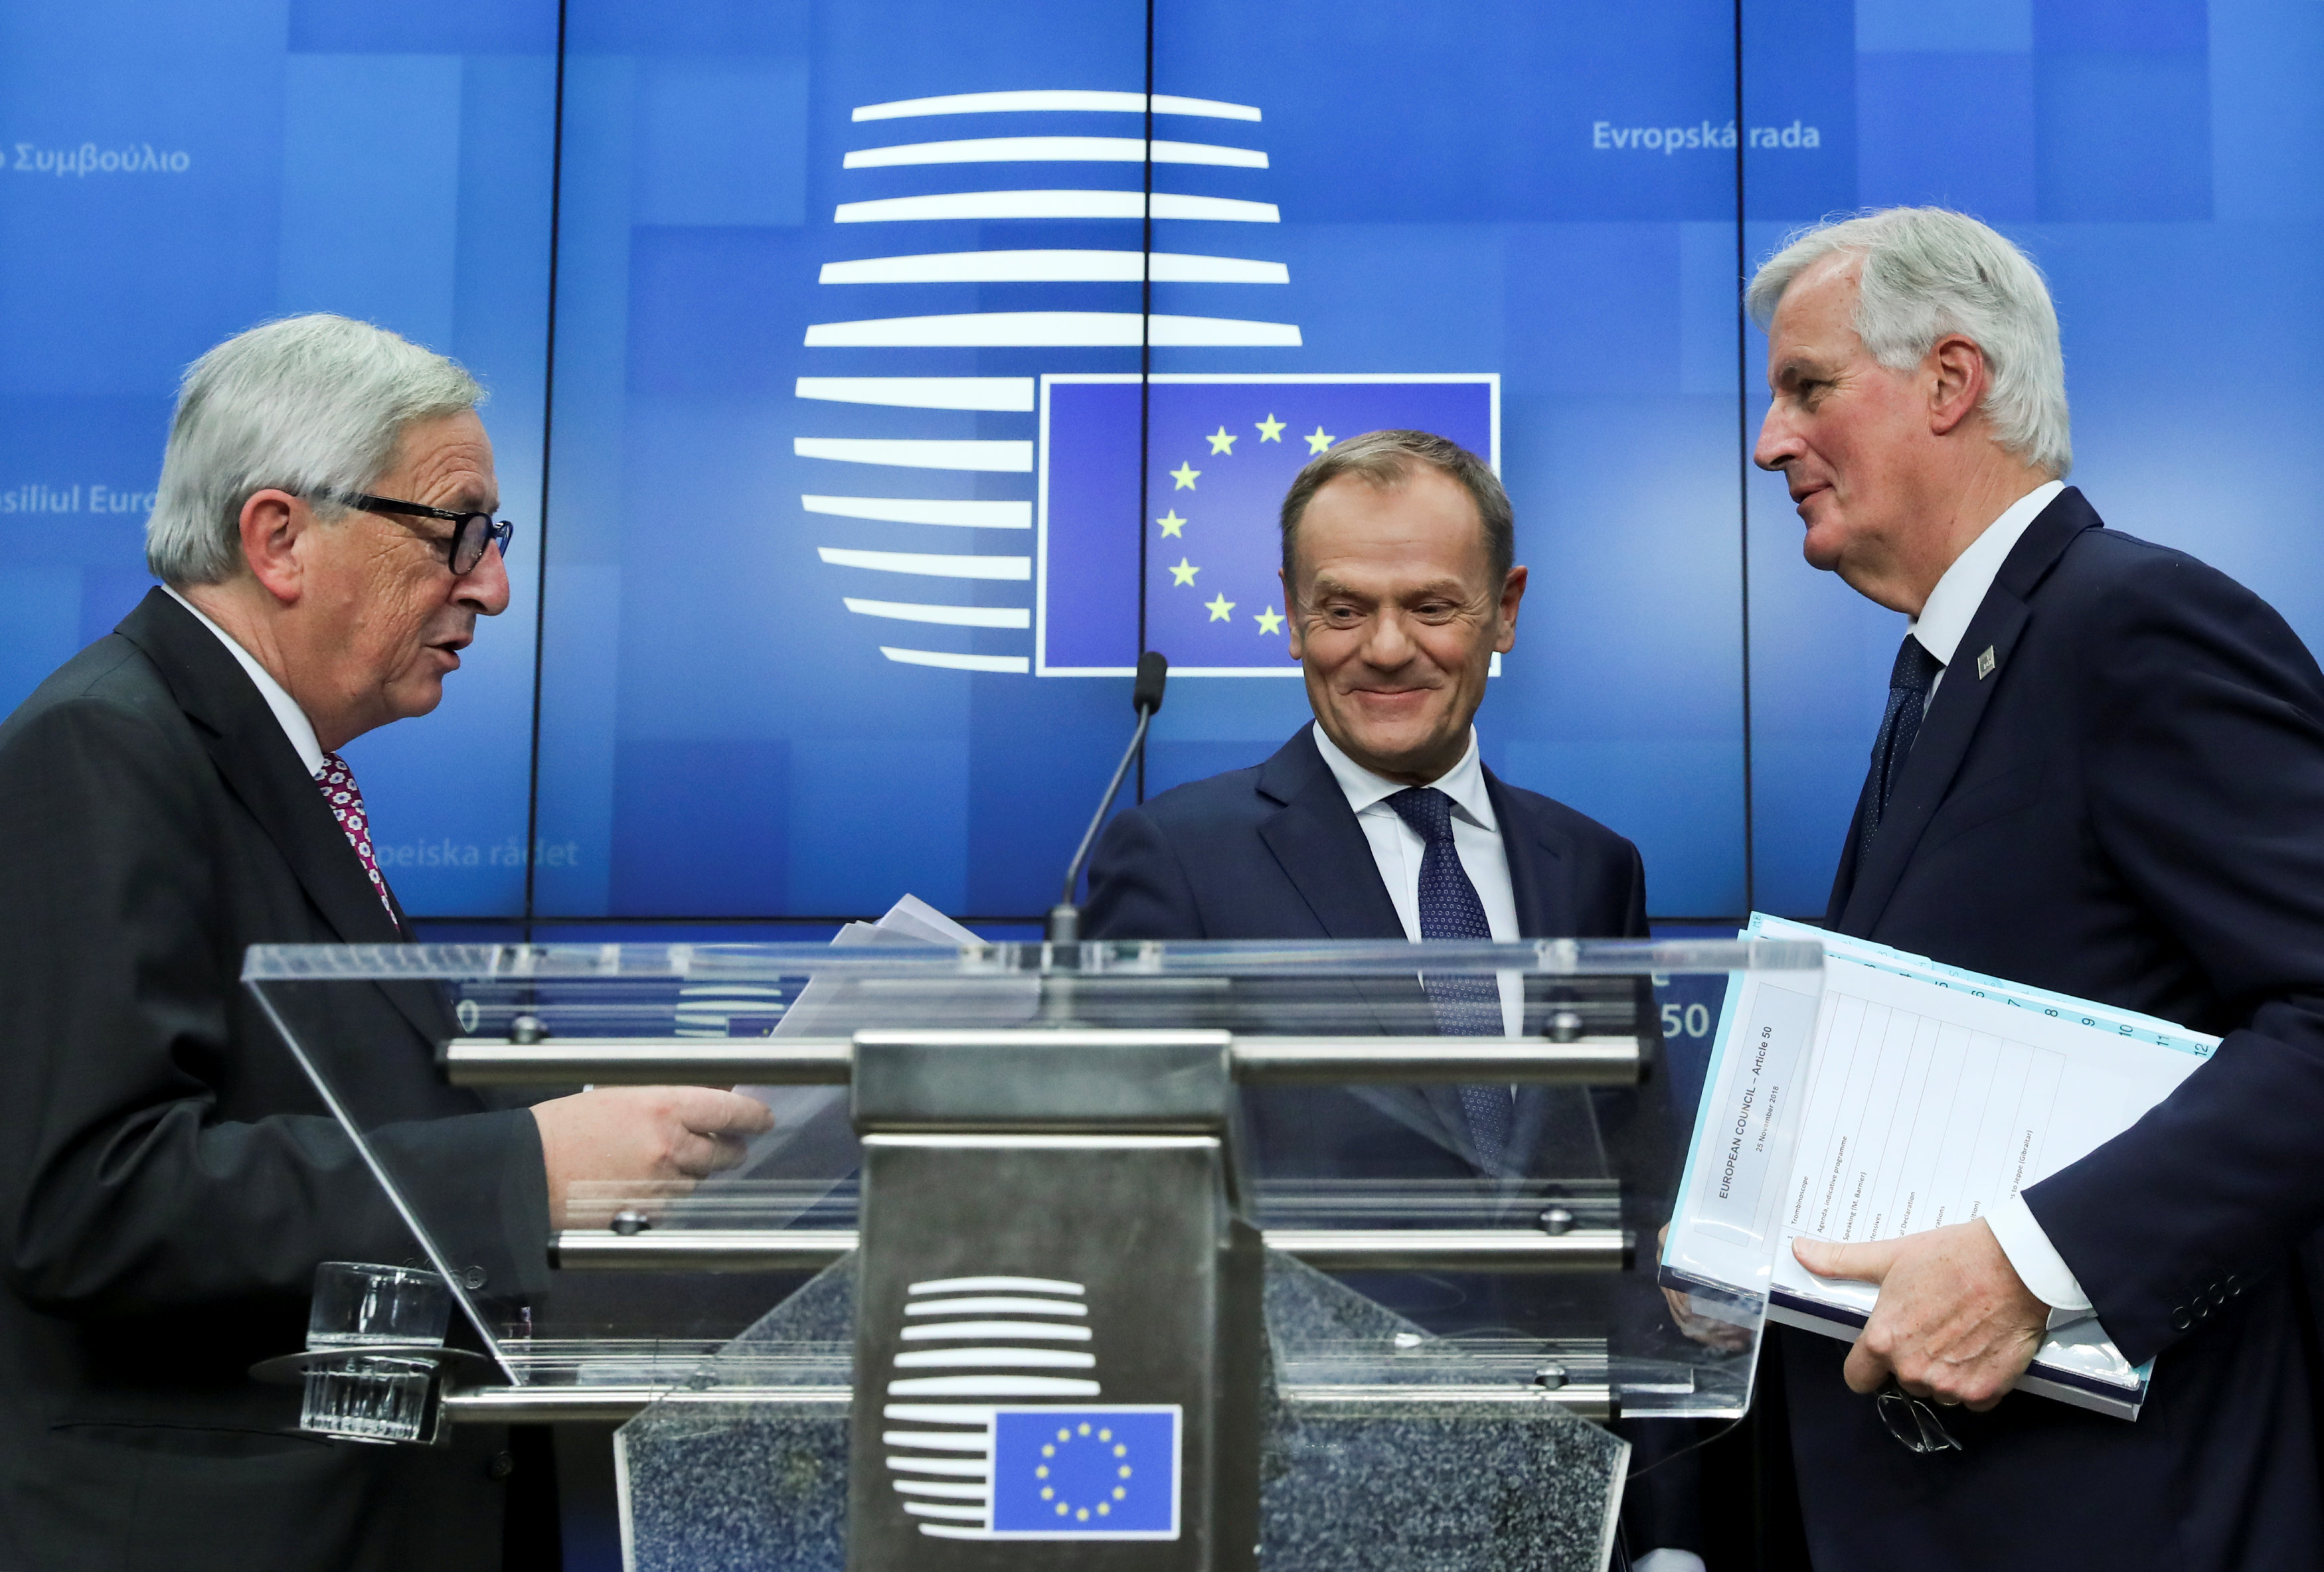 European Commission President Jean-Claude Juncker, European Council President Donald Tusk and European Union's chief Brexit negotiator Michel Barnier react during a news conference after the extraordinary EU leaders summit to finalise and formalise the Brexit agreement in Brussels, Belgium November 25, 2018. REUTERS